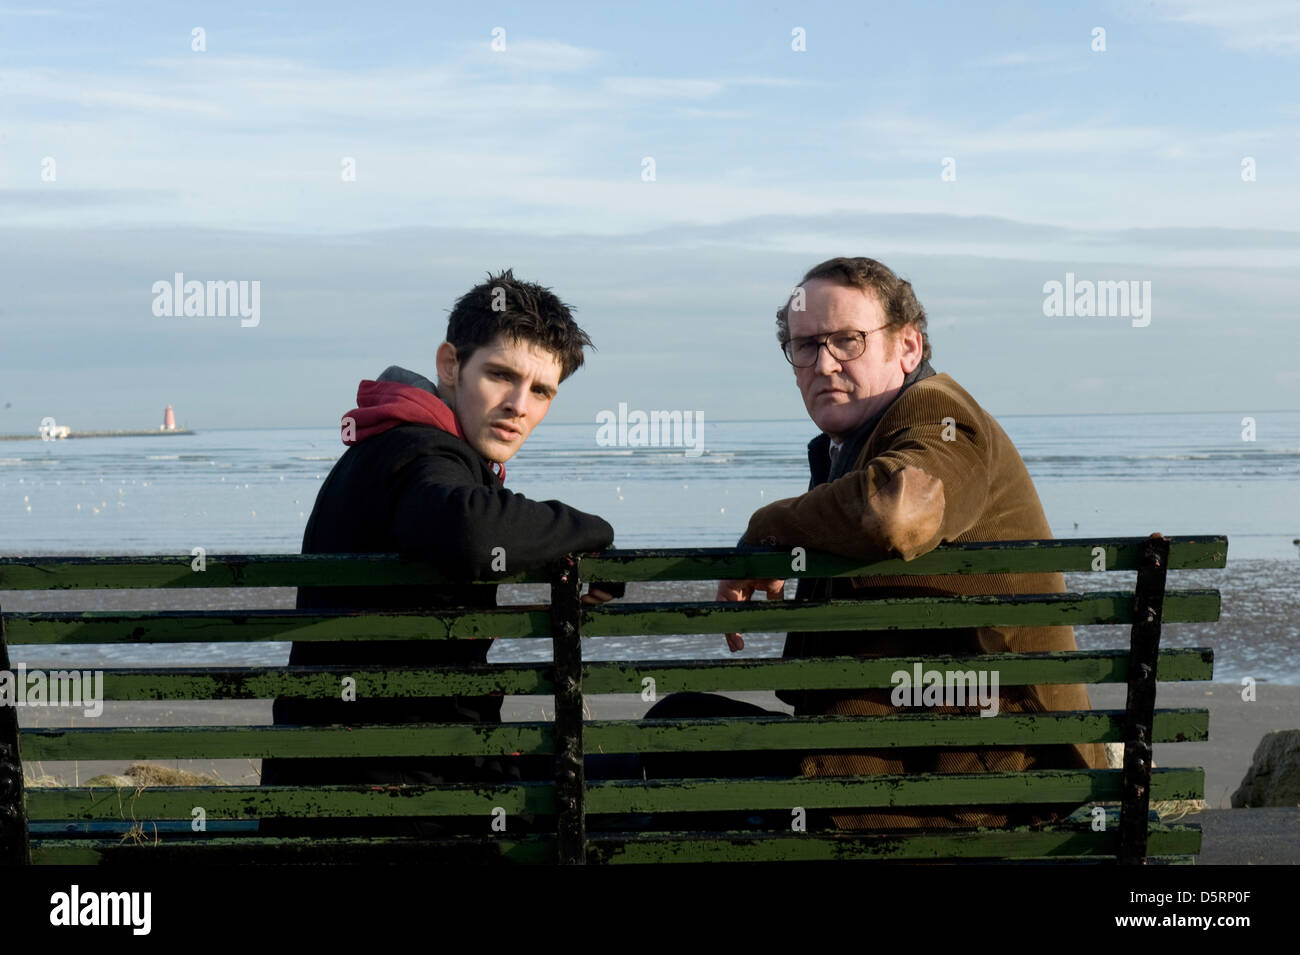 COLIN MORGAN & COLM MEANEY PARKED (2010) - Stock Image